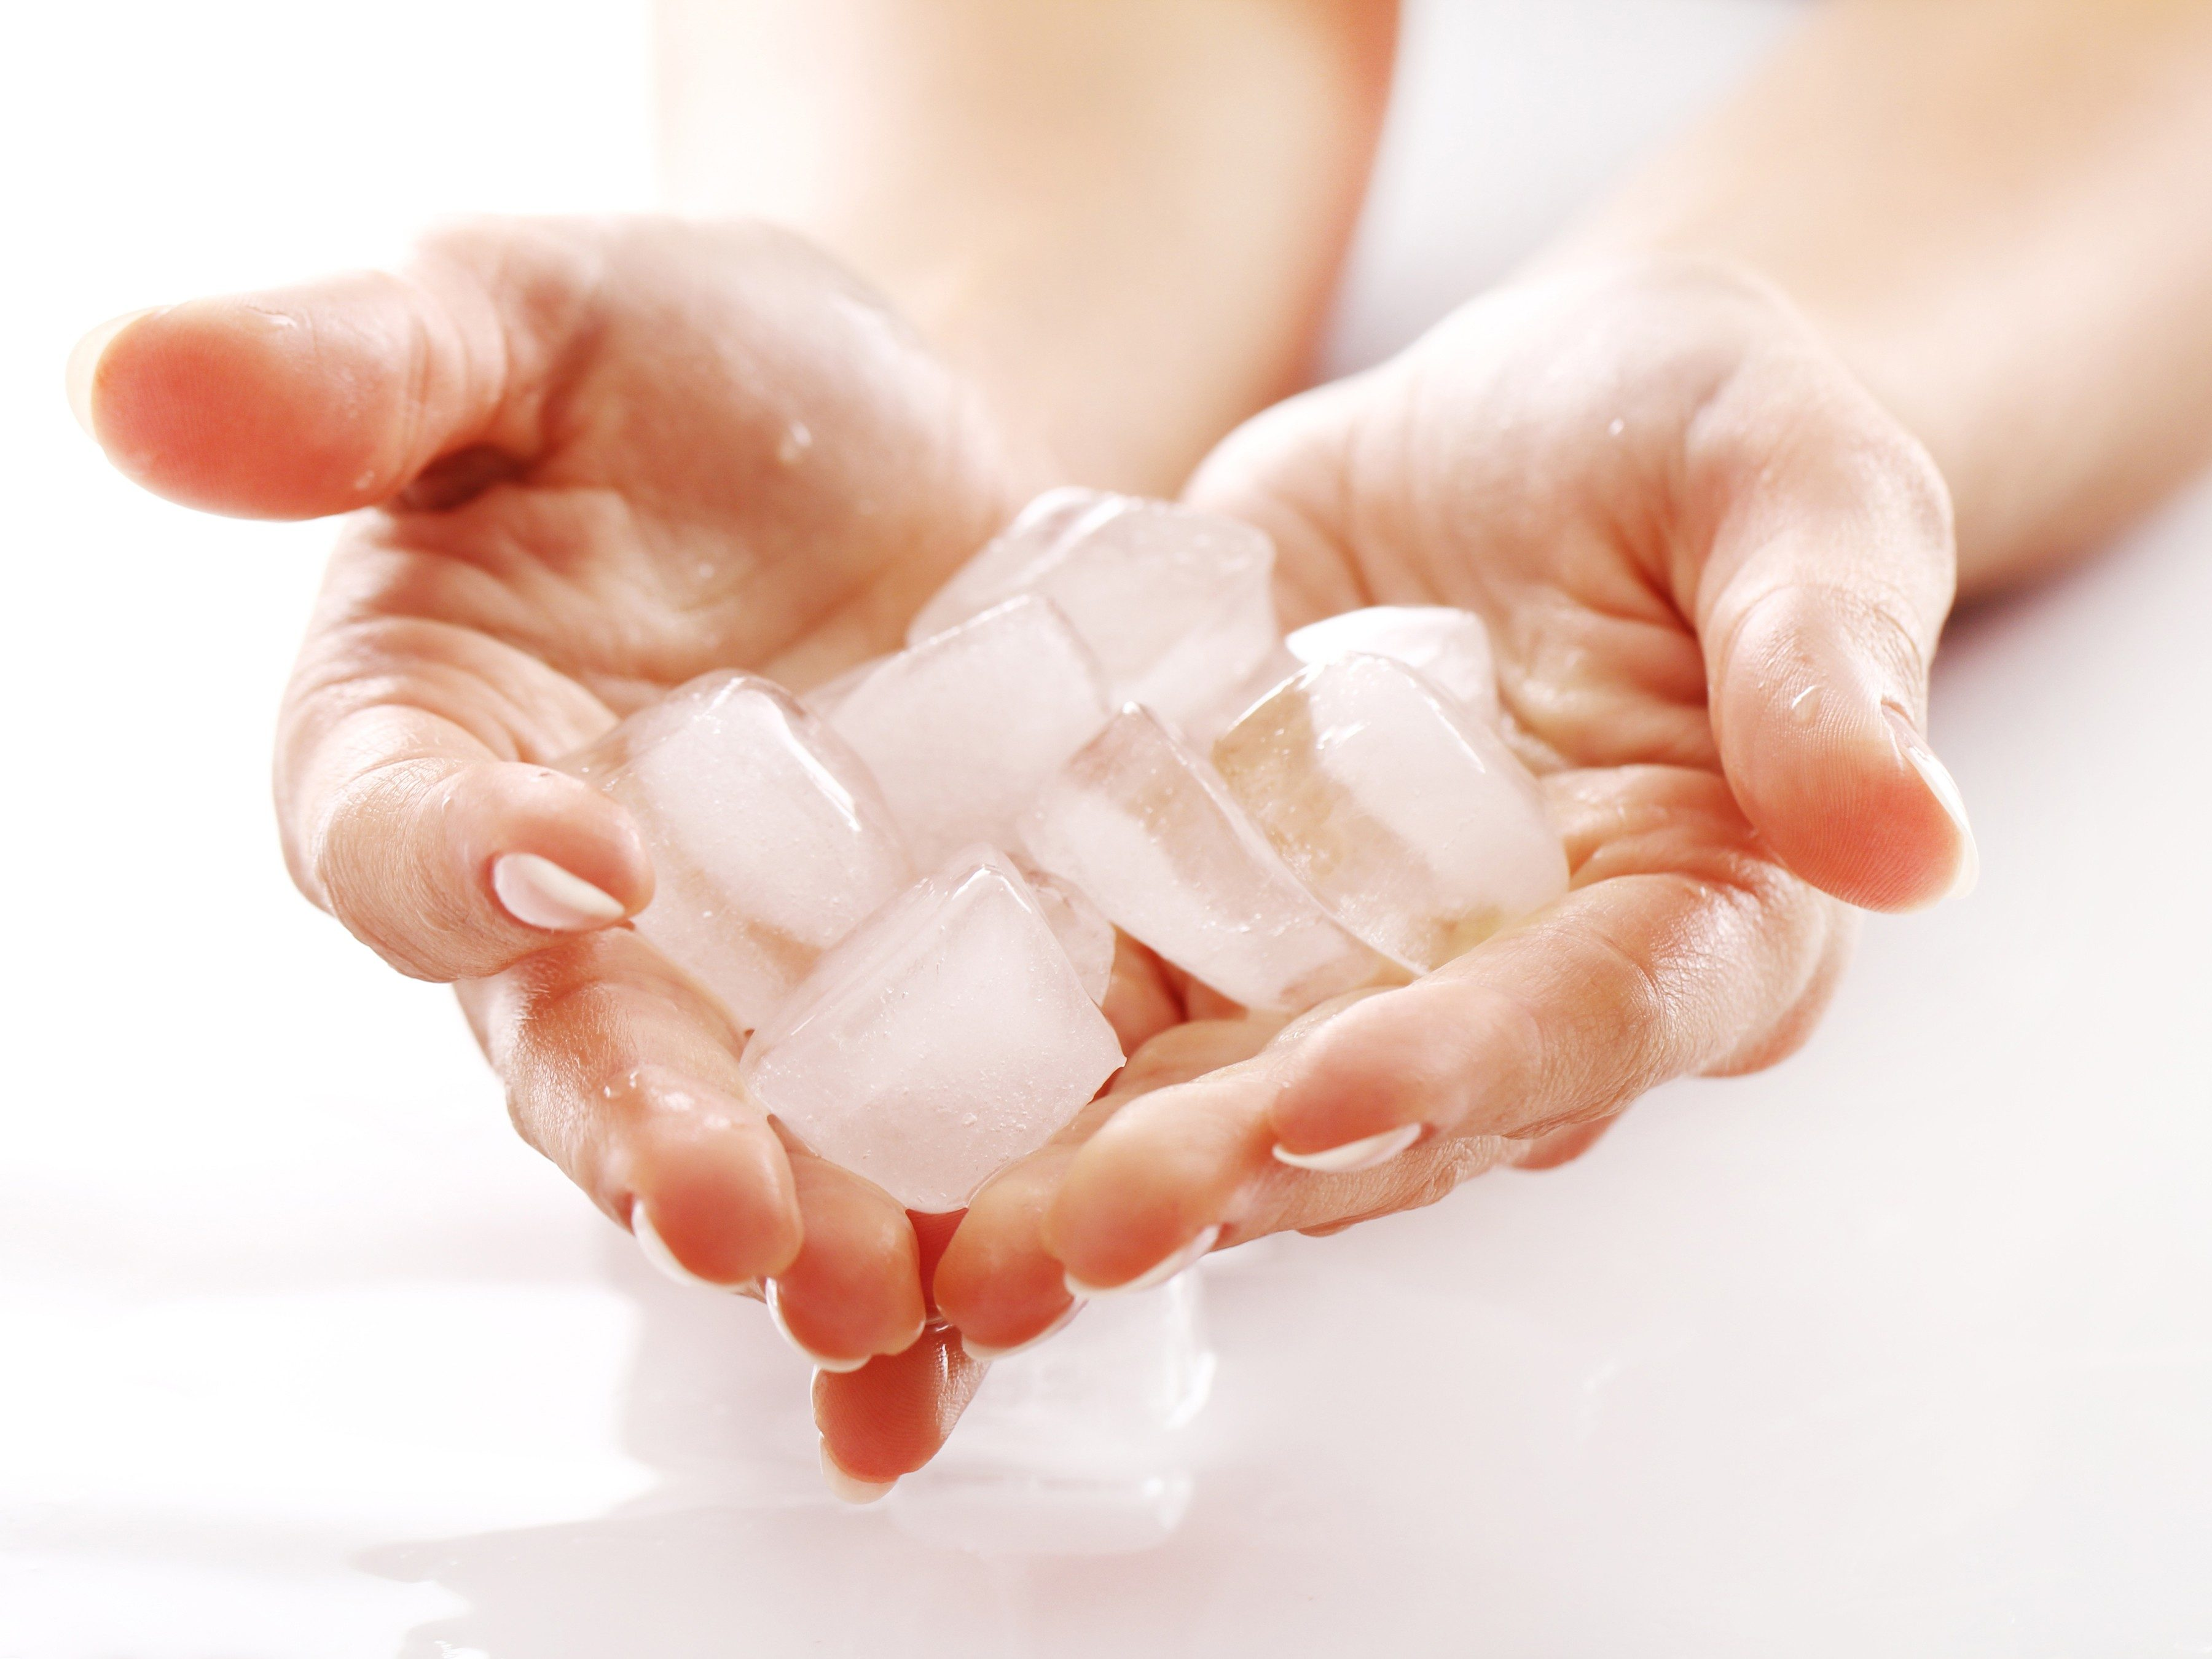 1. Give sore muscles an ice massage.